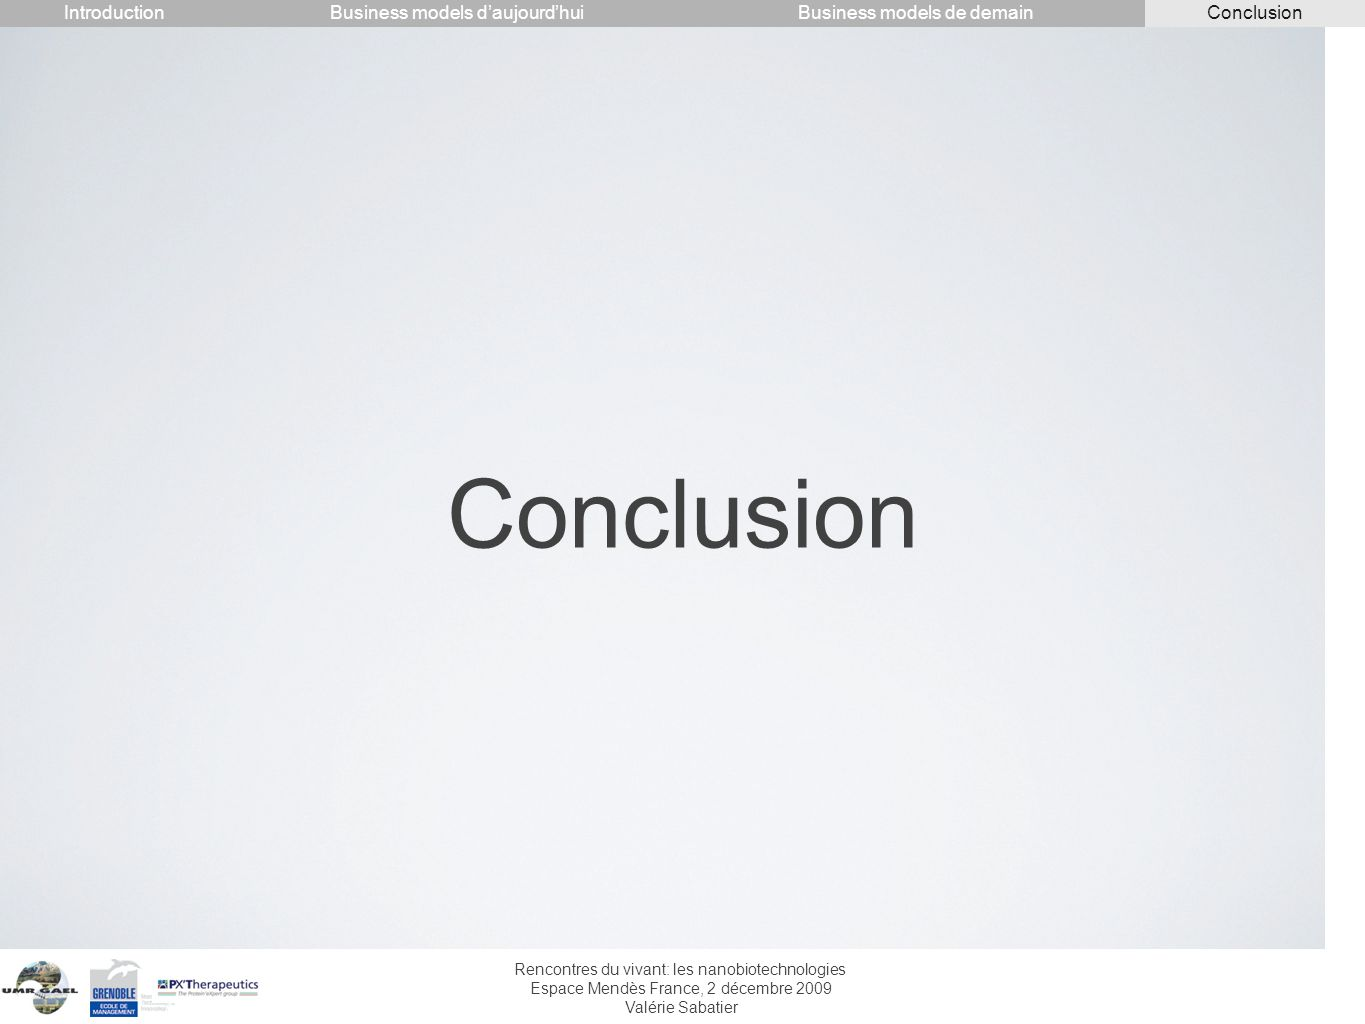 Conclusion Introduction Conclusion Business models d'aujourd'hui